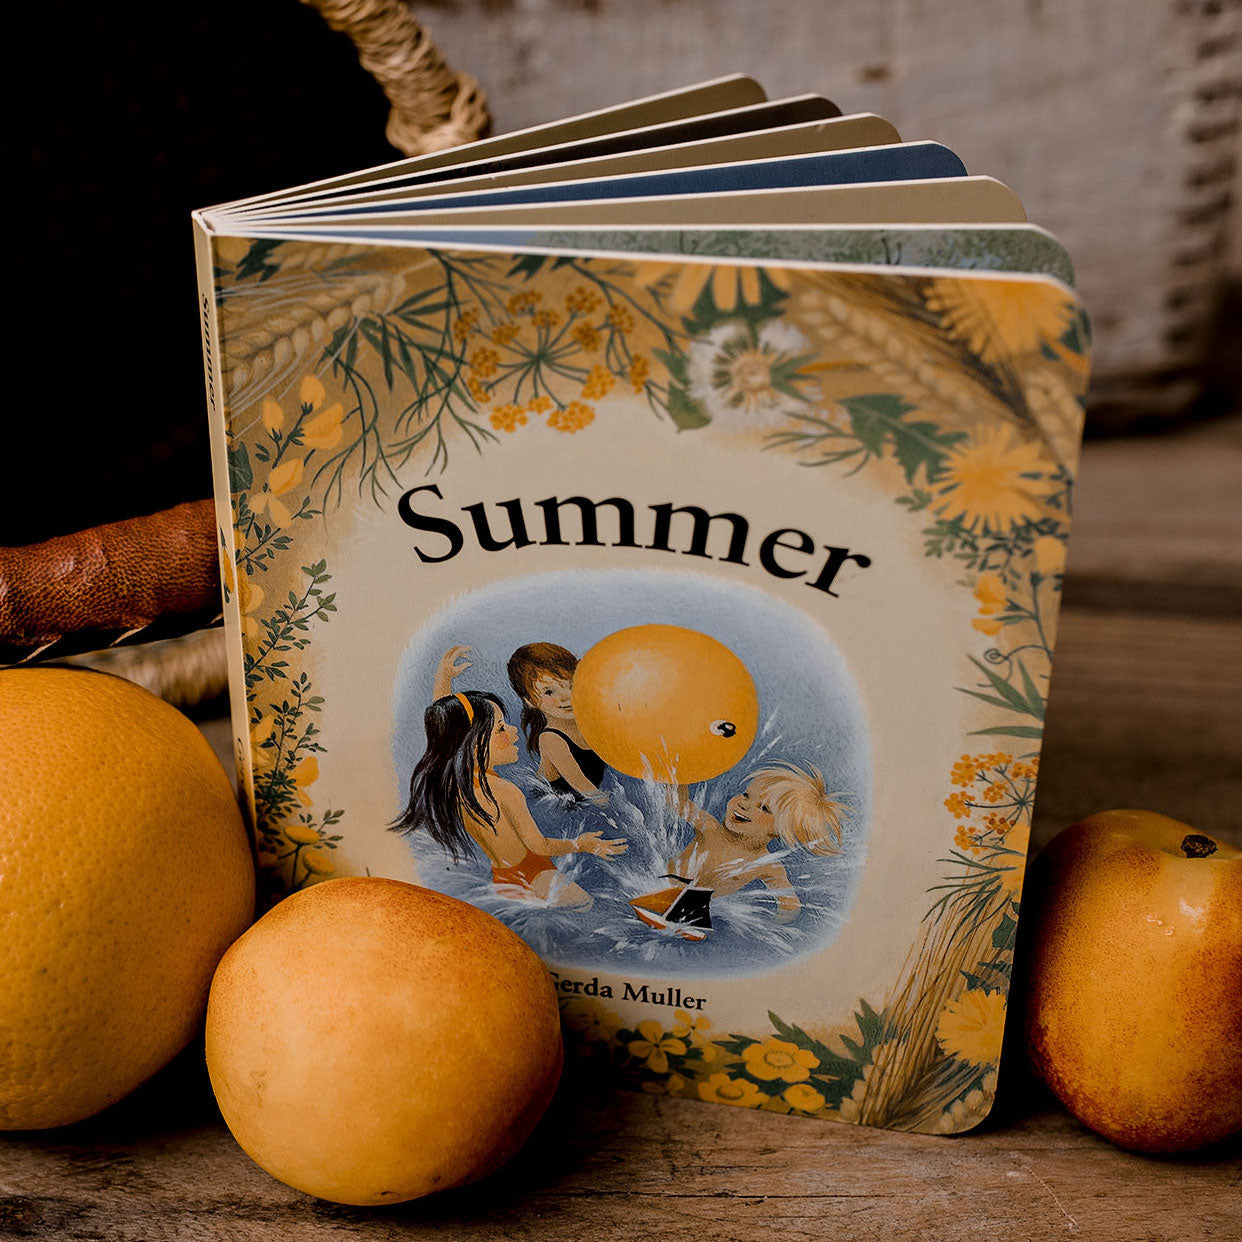 Summer - board book by children's author Gerda Muller